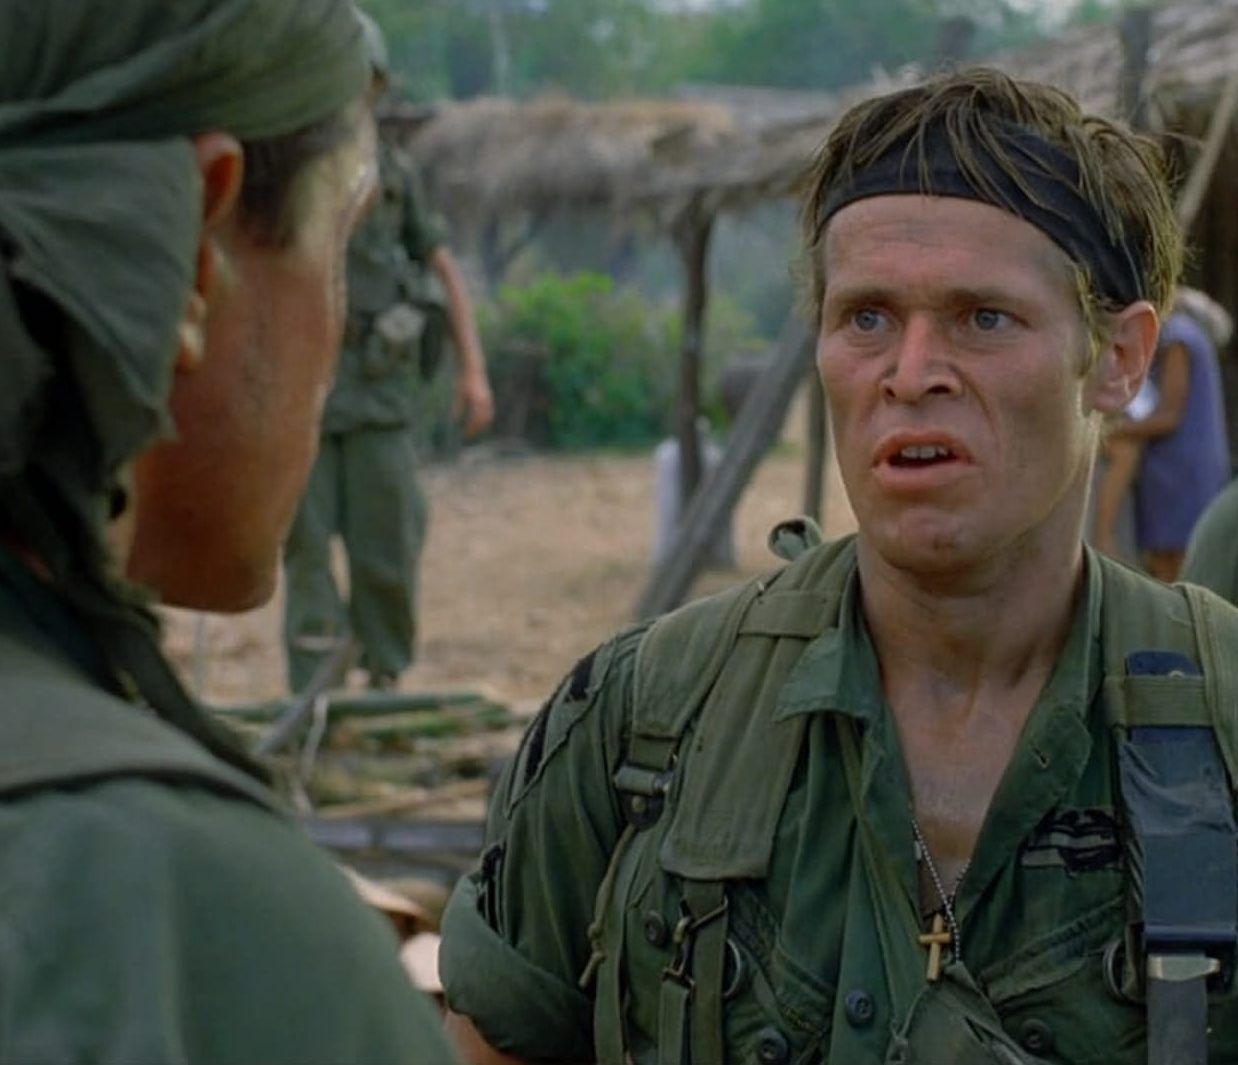 5NX8D6xMPiOgLAsabY68pNmGYa2 e1606751816982 30 Things You Probably Didn't Know About Platoon